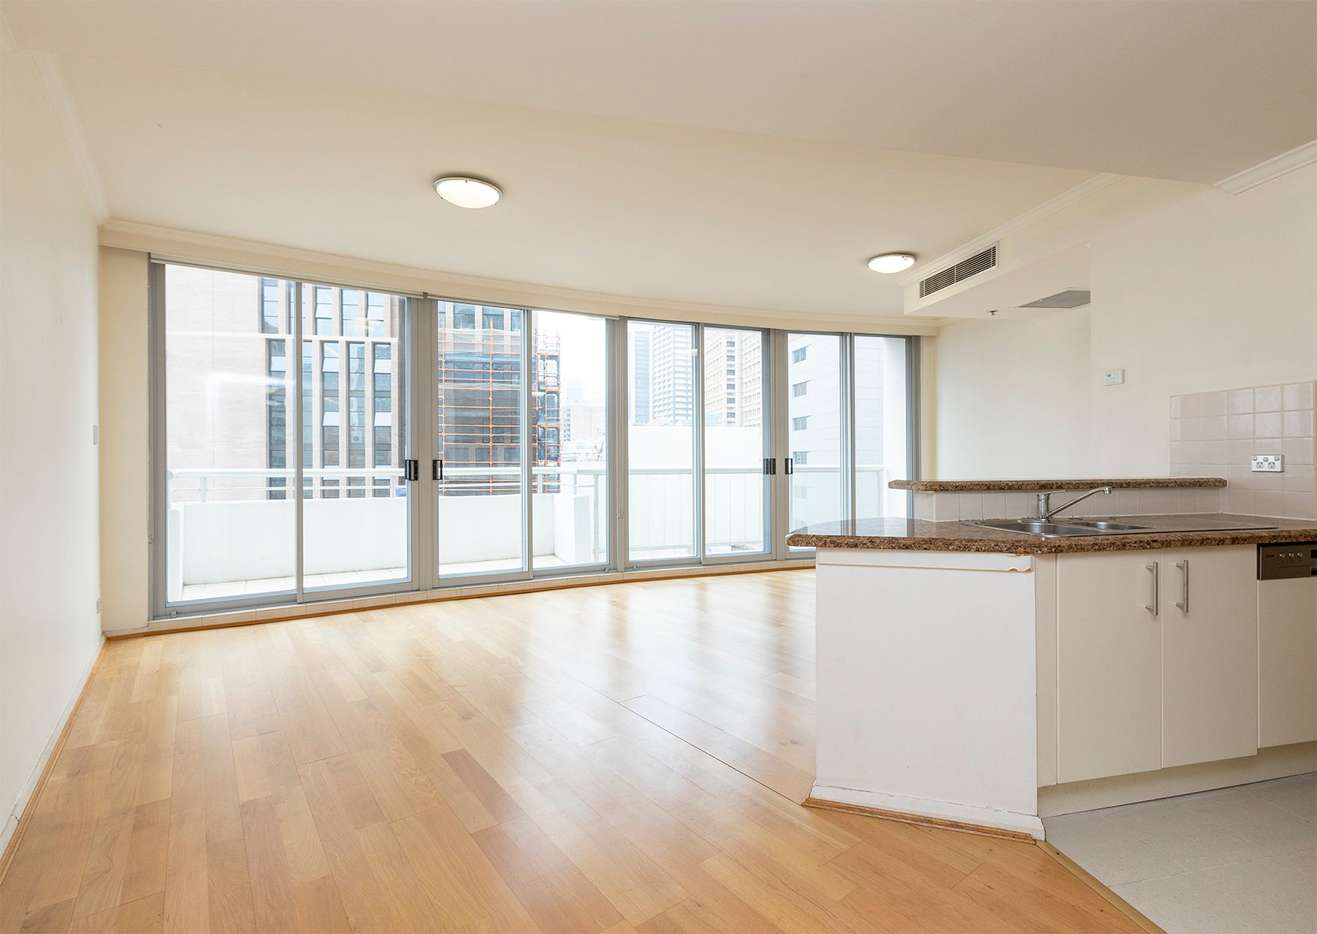 Main view of Homely apartment listing, 266/298 Sussex Street, Sydney, NSW 2000